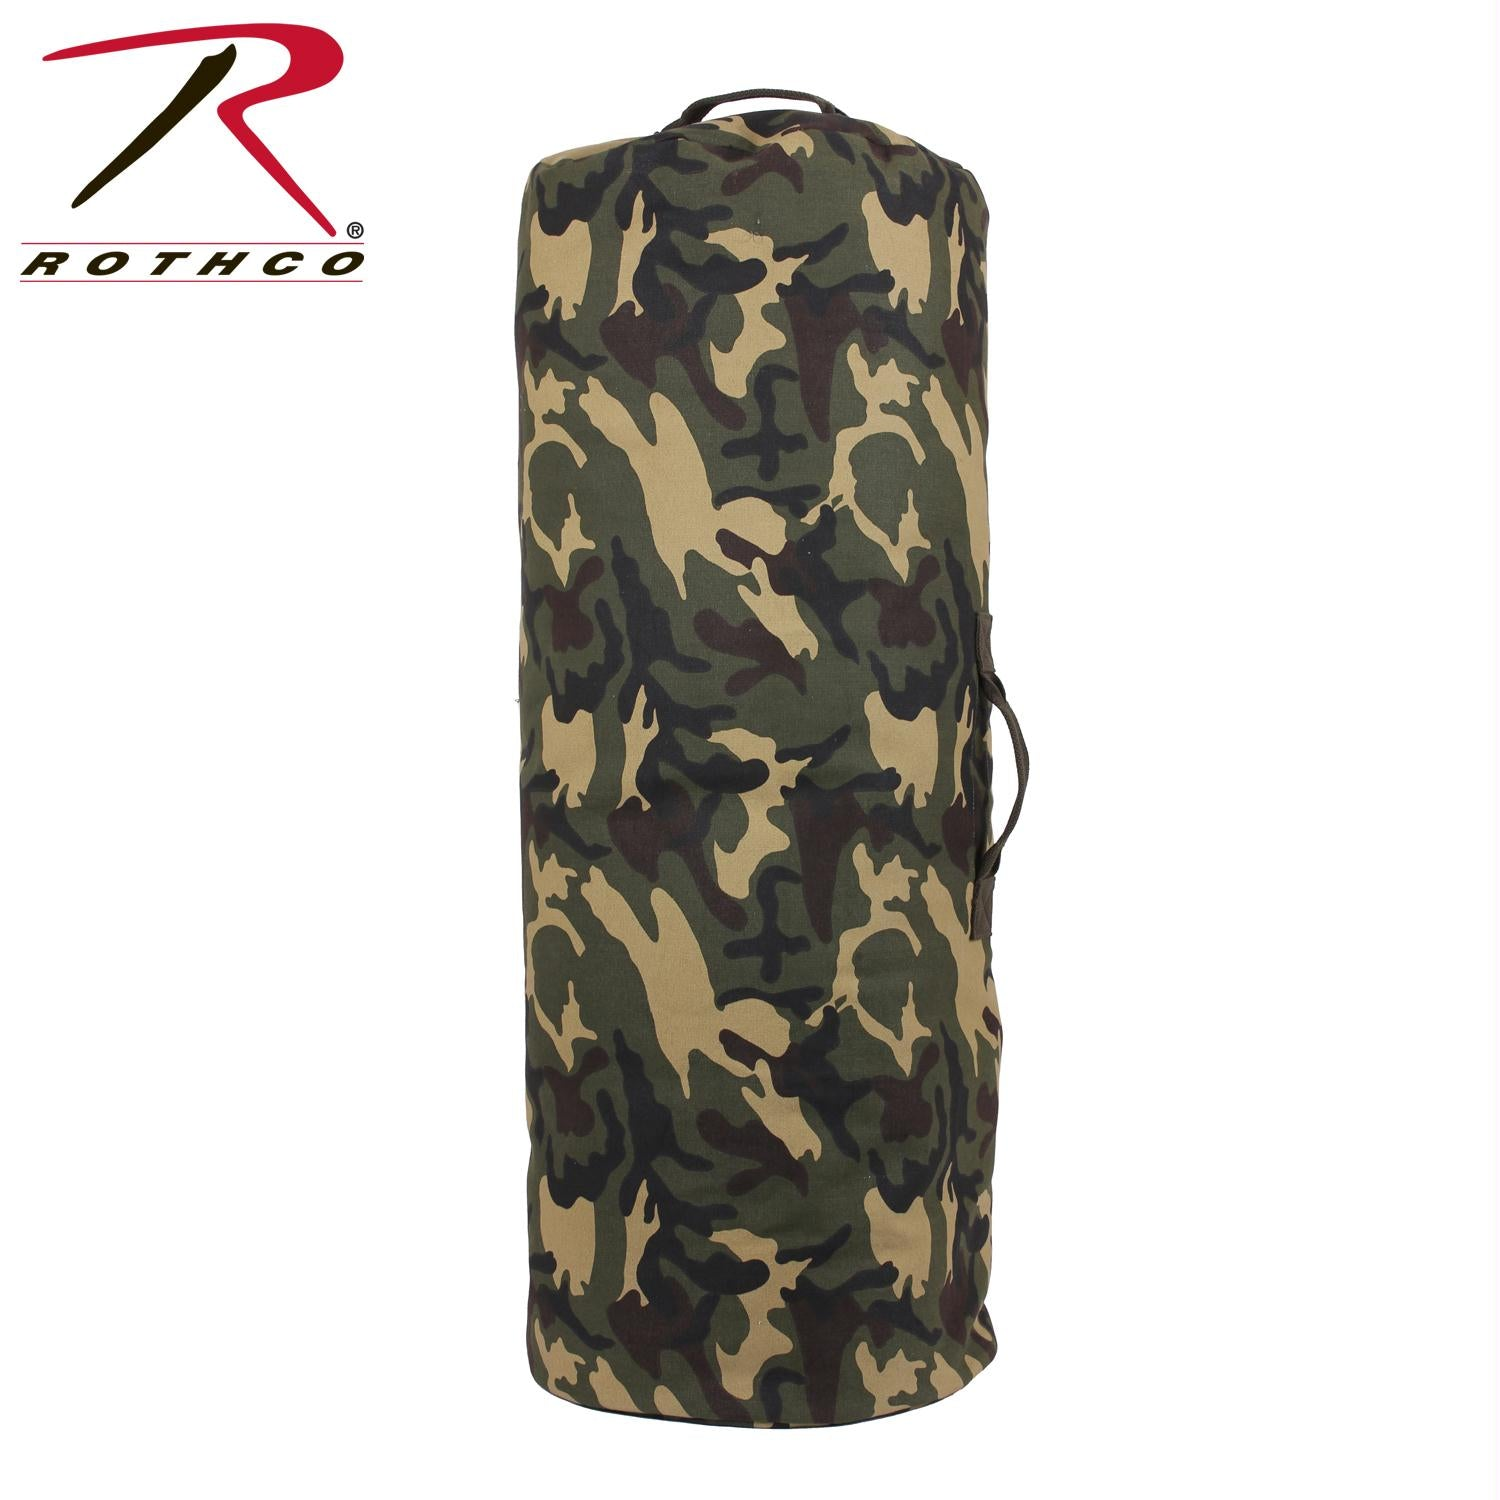 Rothco Canvas Duffle Bag w/ Side Zipper - Woodland Camo / 25